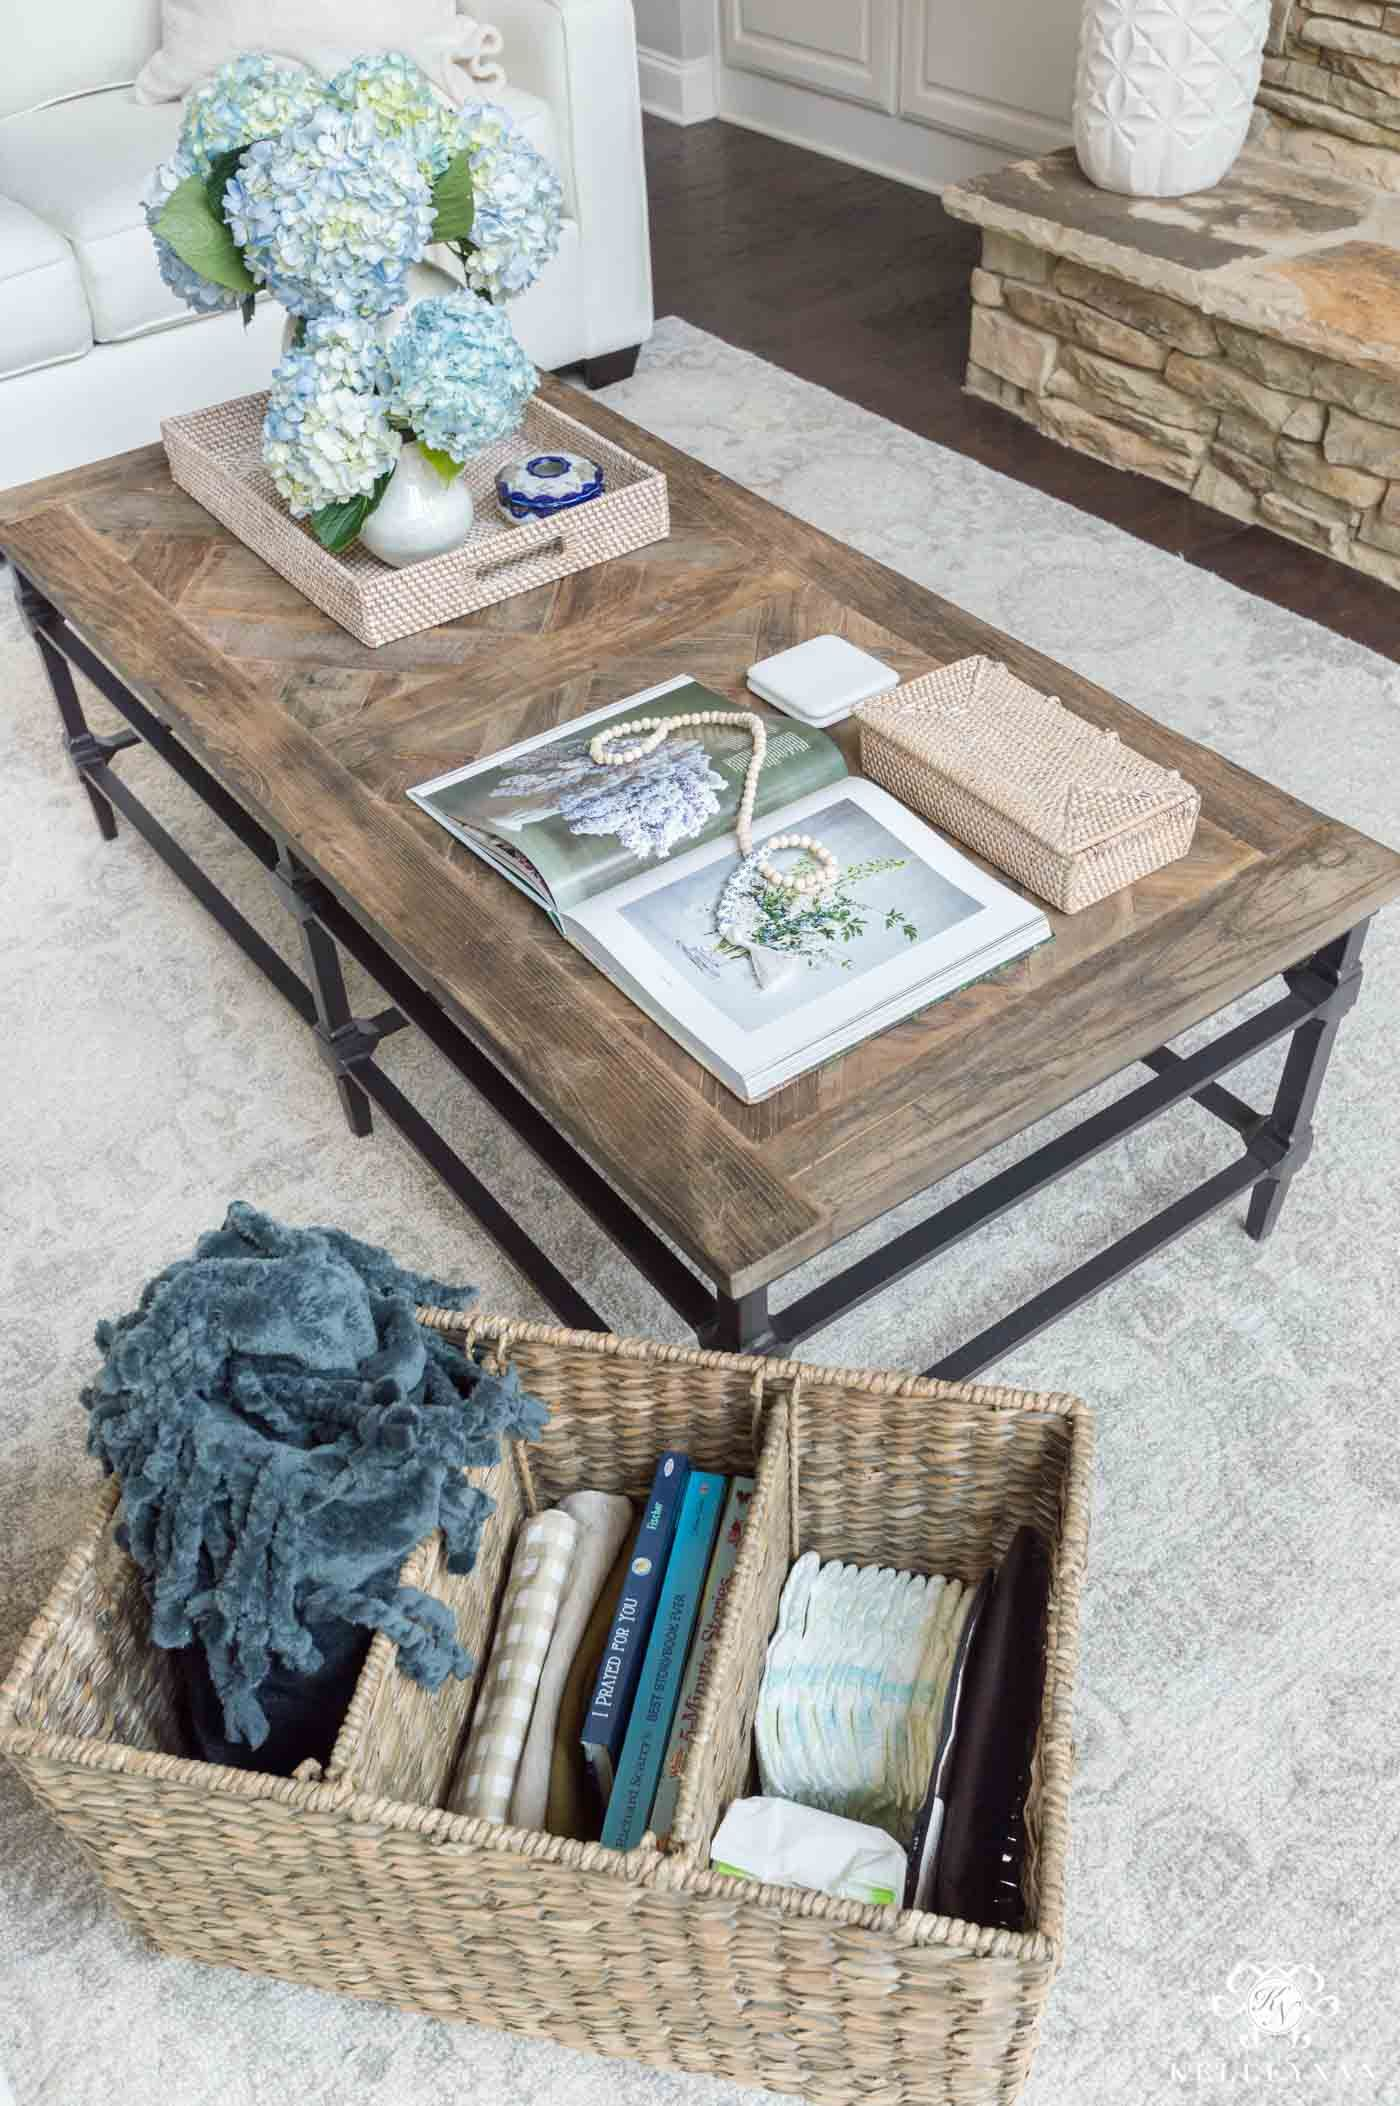 3 Ideas To Conceal Baby Items Toys In The Living Room Kelley Nan Reclaimed Wood Coffee Table Wood Coffee Table Decor Coffee Table Pottery Barn